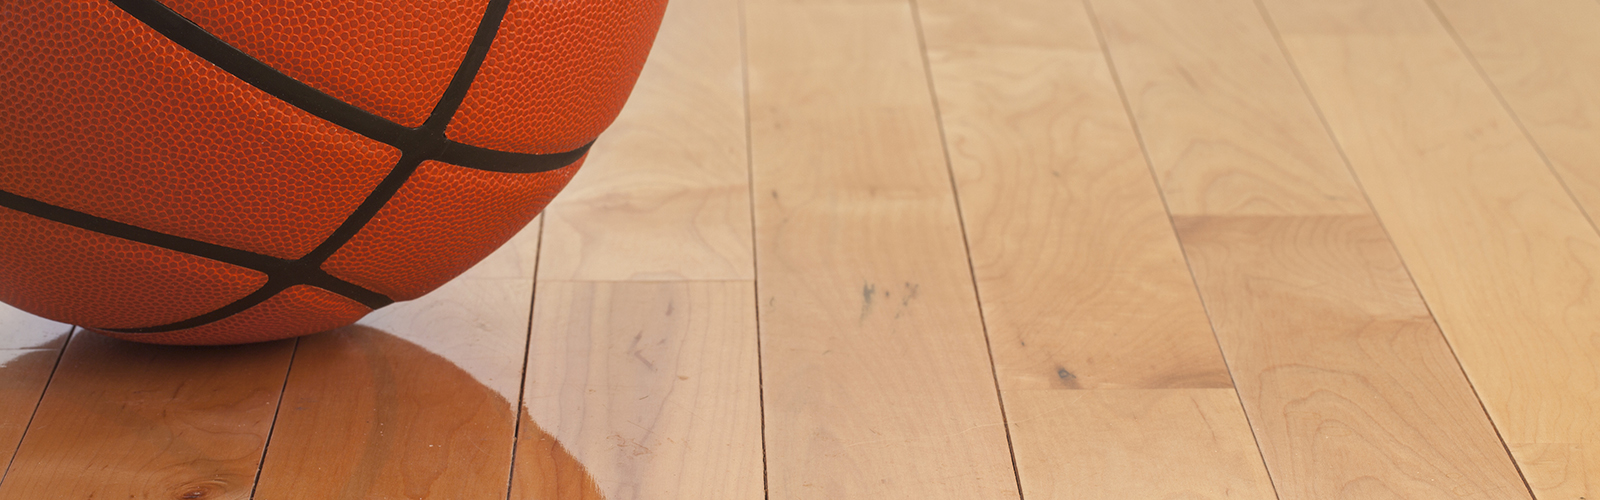 Top 28 Wood Floor Care A Primer On Laminate Wood